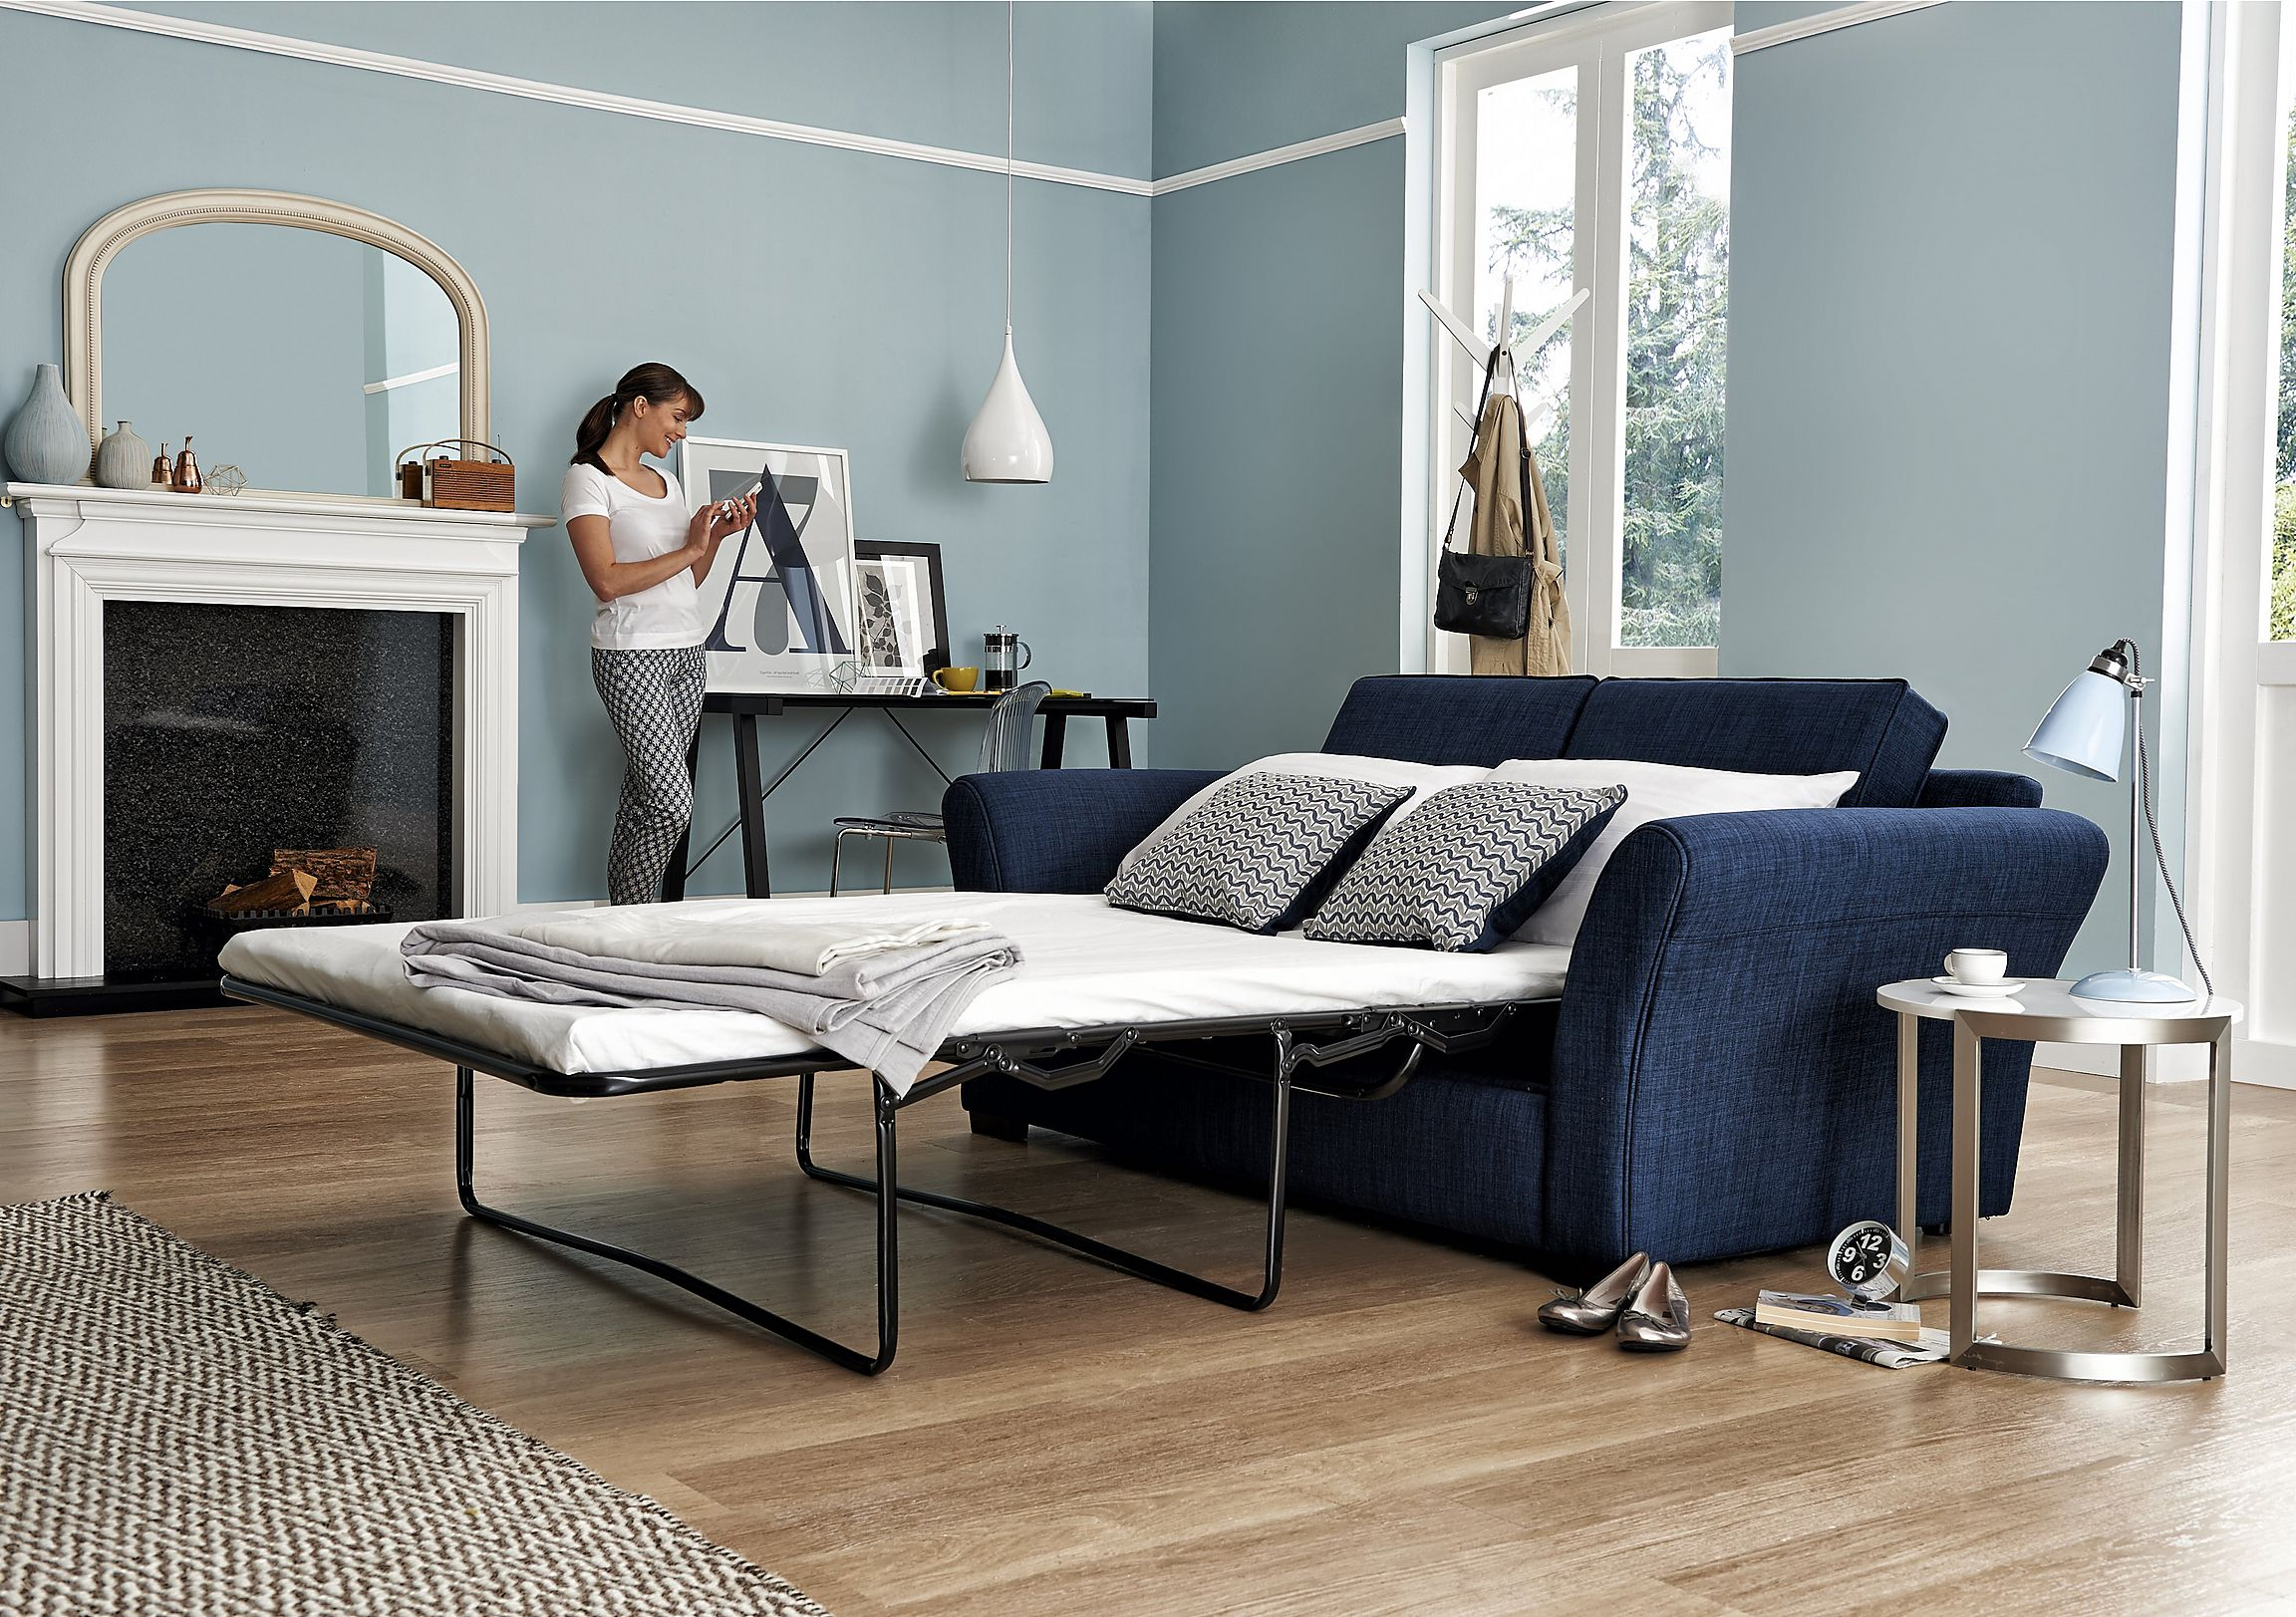 The best sofa bed 2018 for living rooms and spare rooms | T3